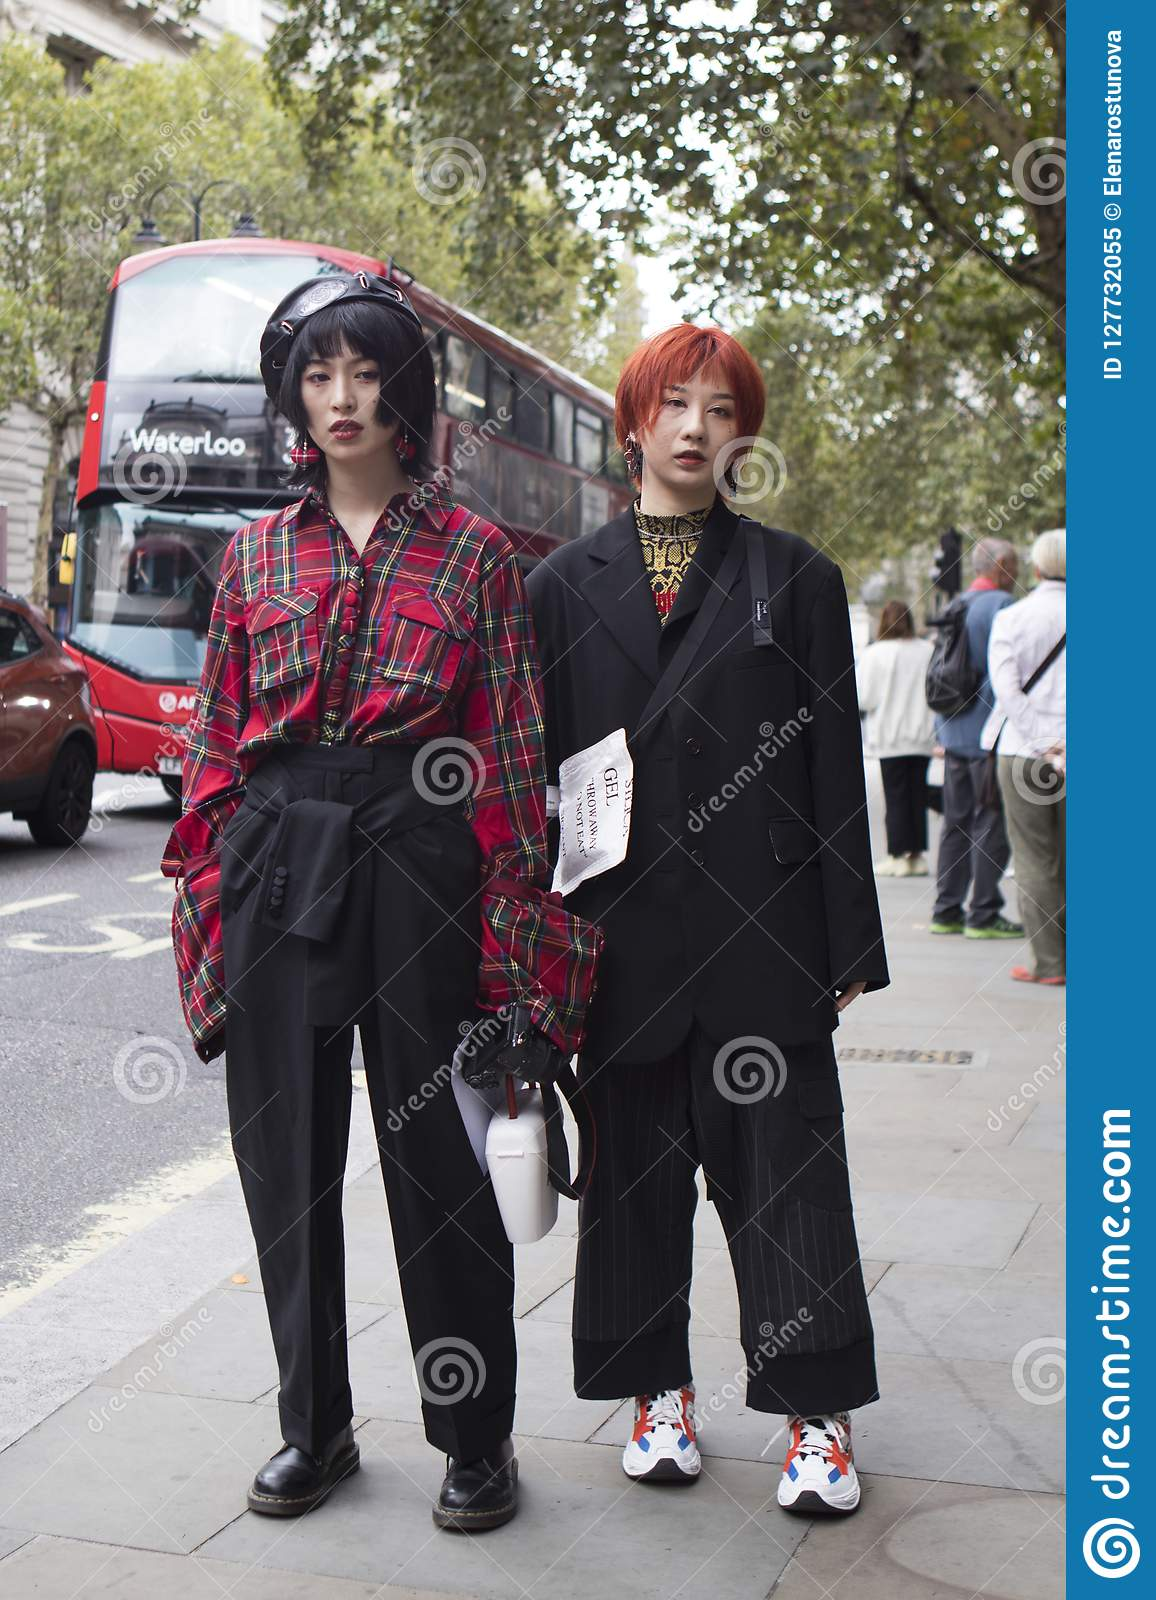 1a56d5f3094 People On The Street During The London Fashion Week. Editorial Image ...